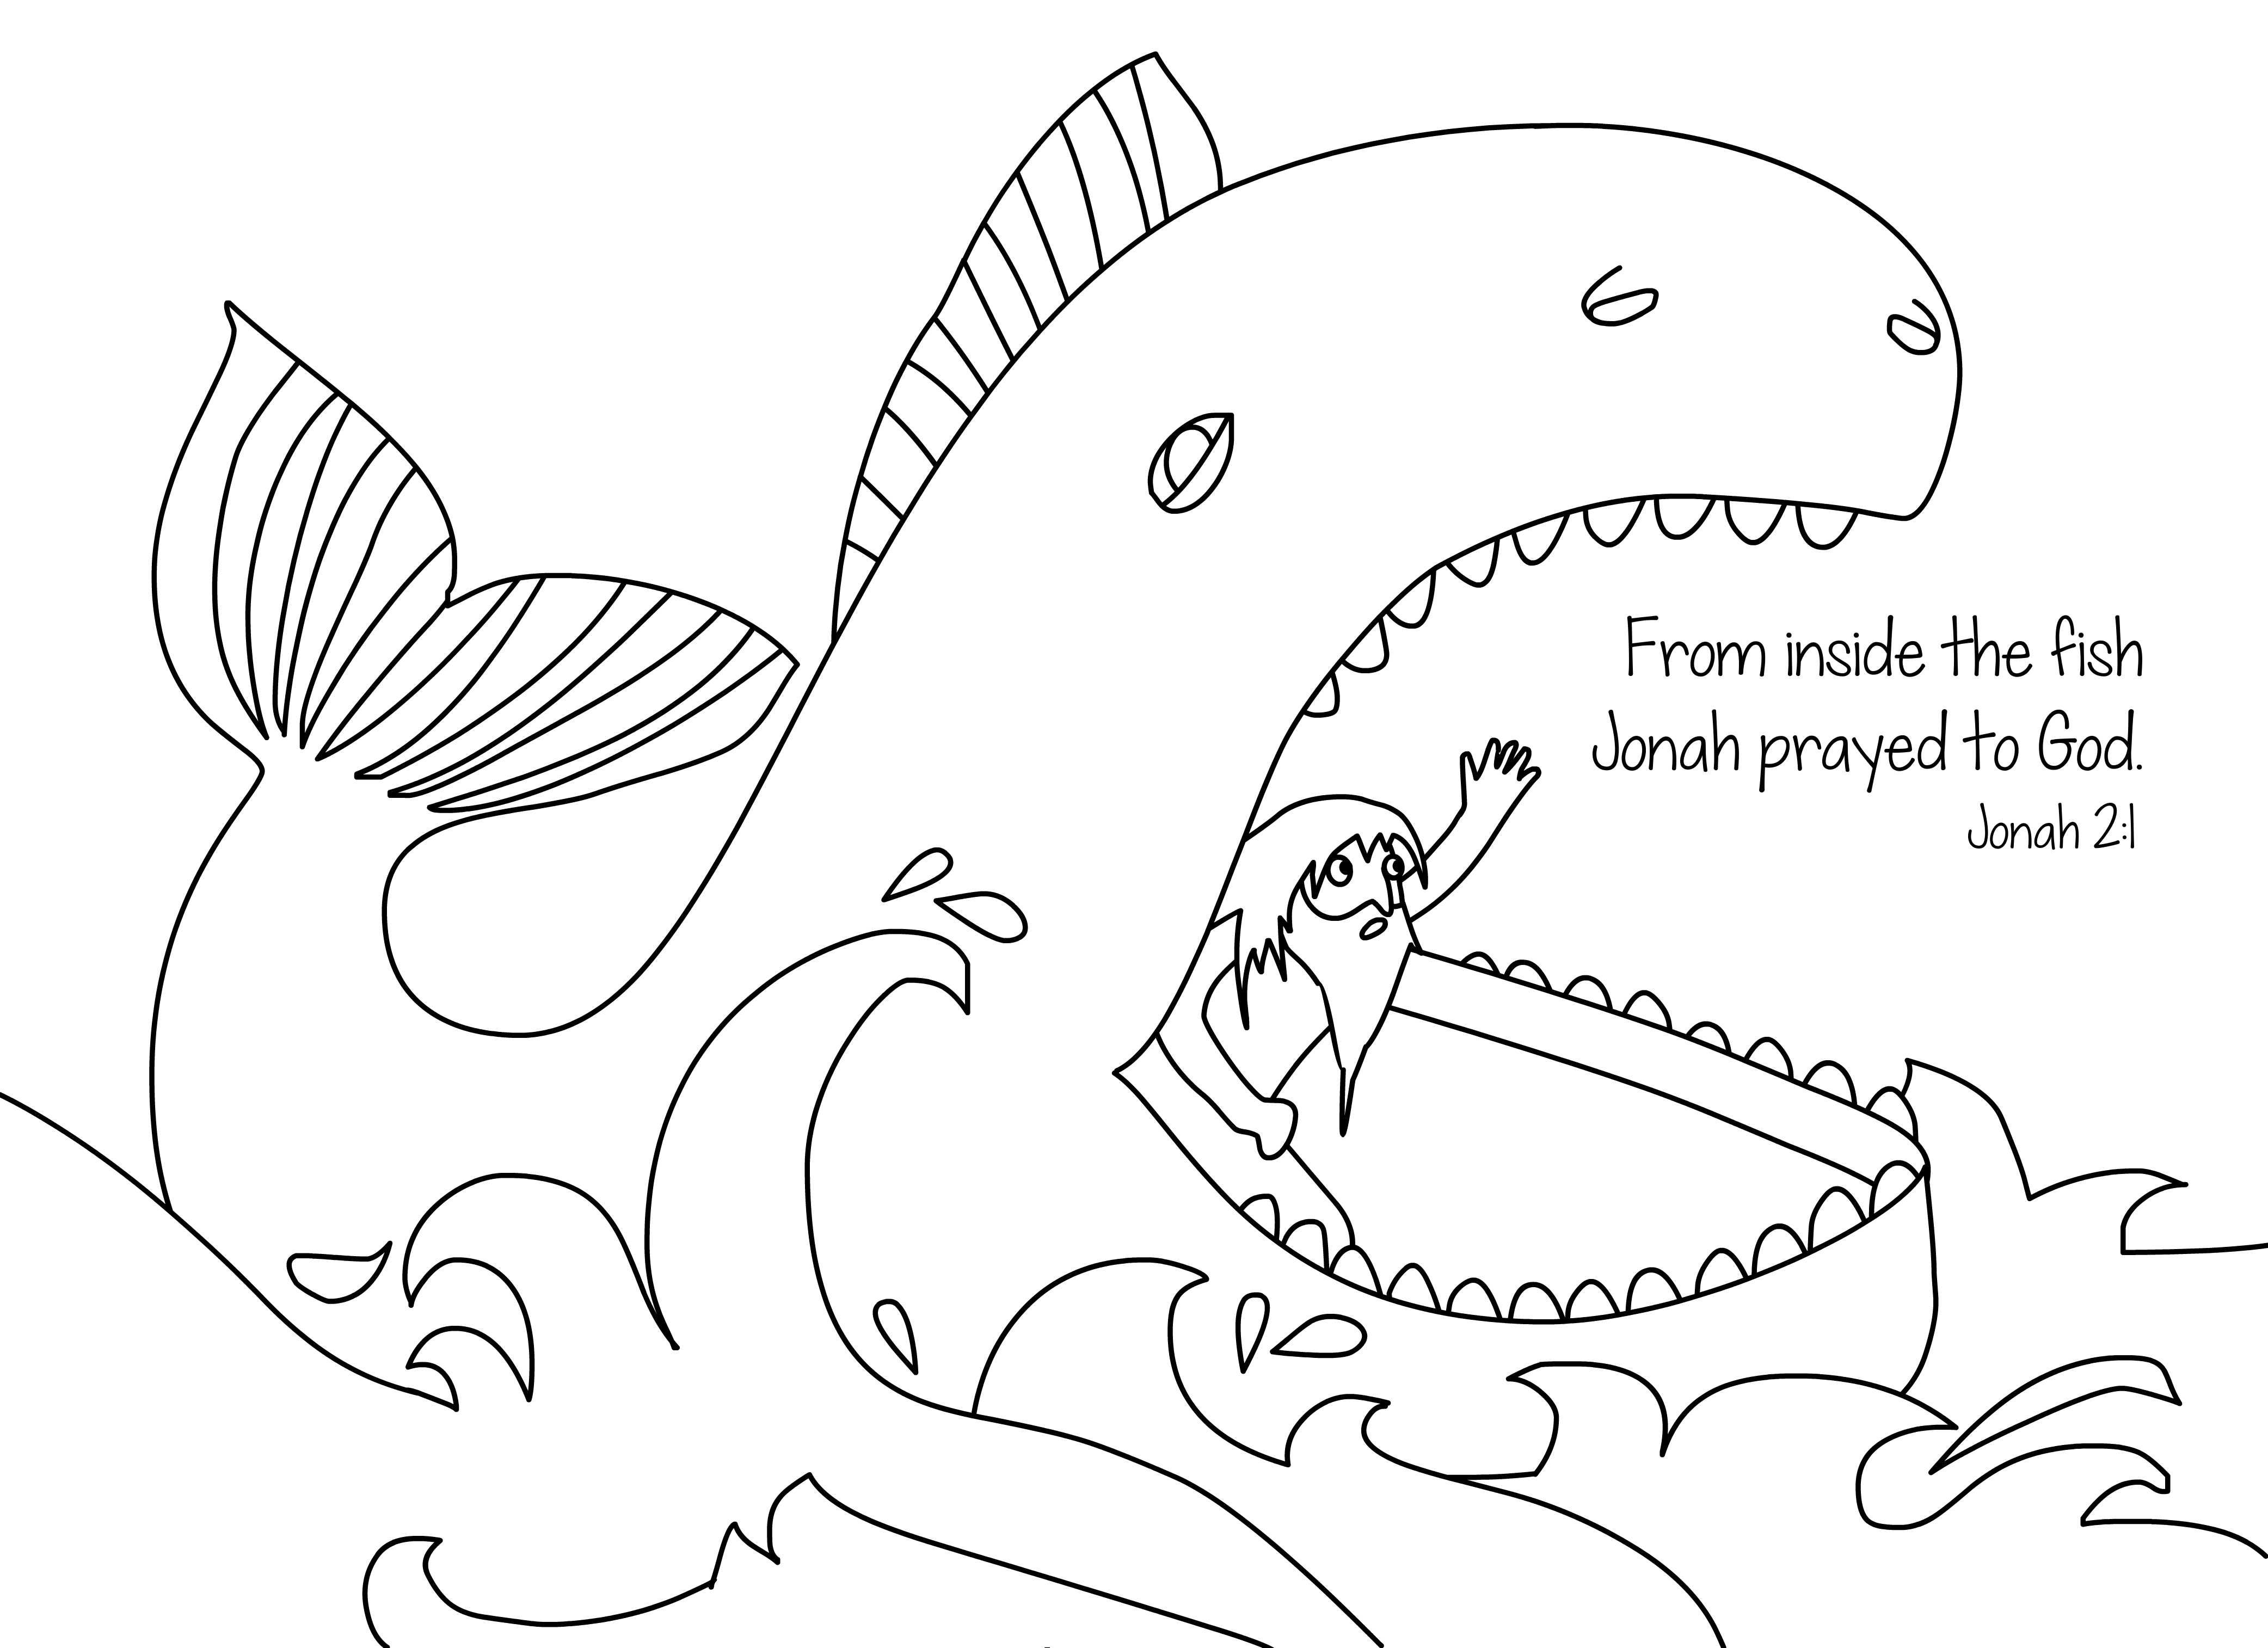 coloring pages bible stories Collection-Jonah and the whale free bible coloring page from Cullen s Abc s 2-n